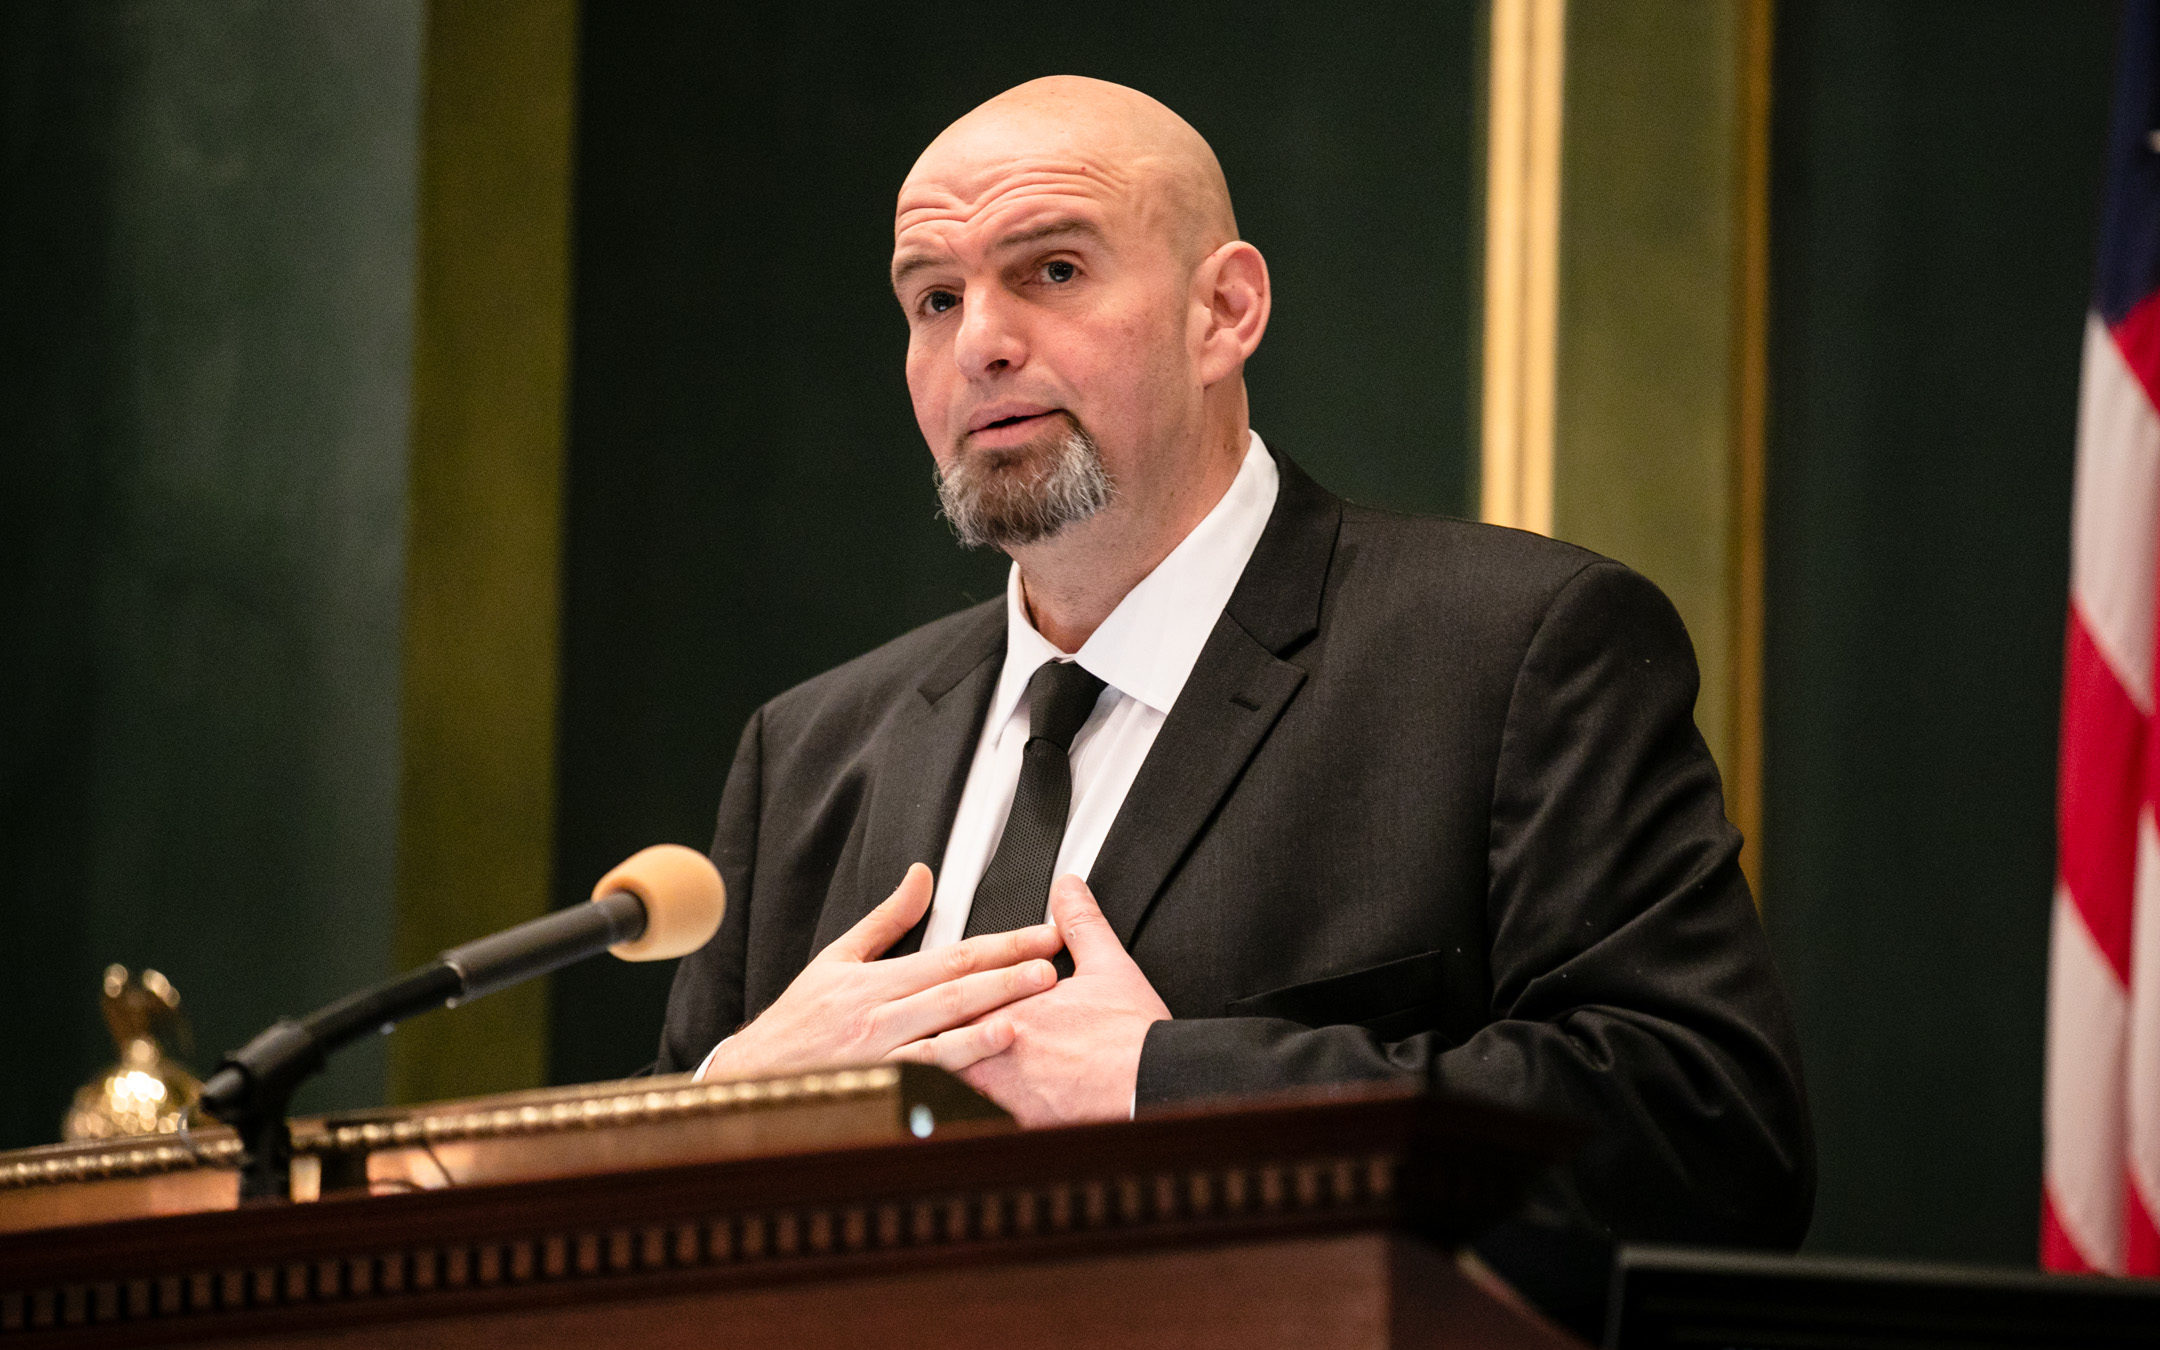 Lt. Governor John Fetterman at the 2019 Inauguration of Governor Tom Wolf and Lieutenant Governor John Fetterman